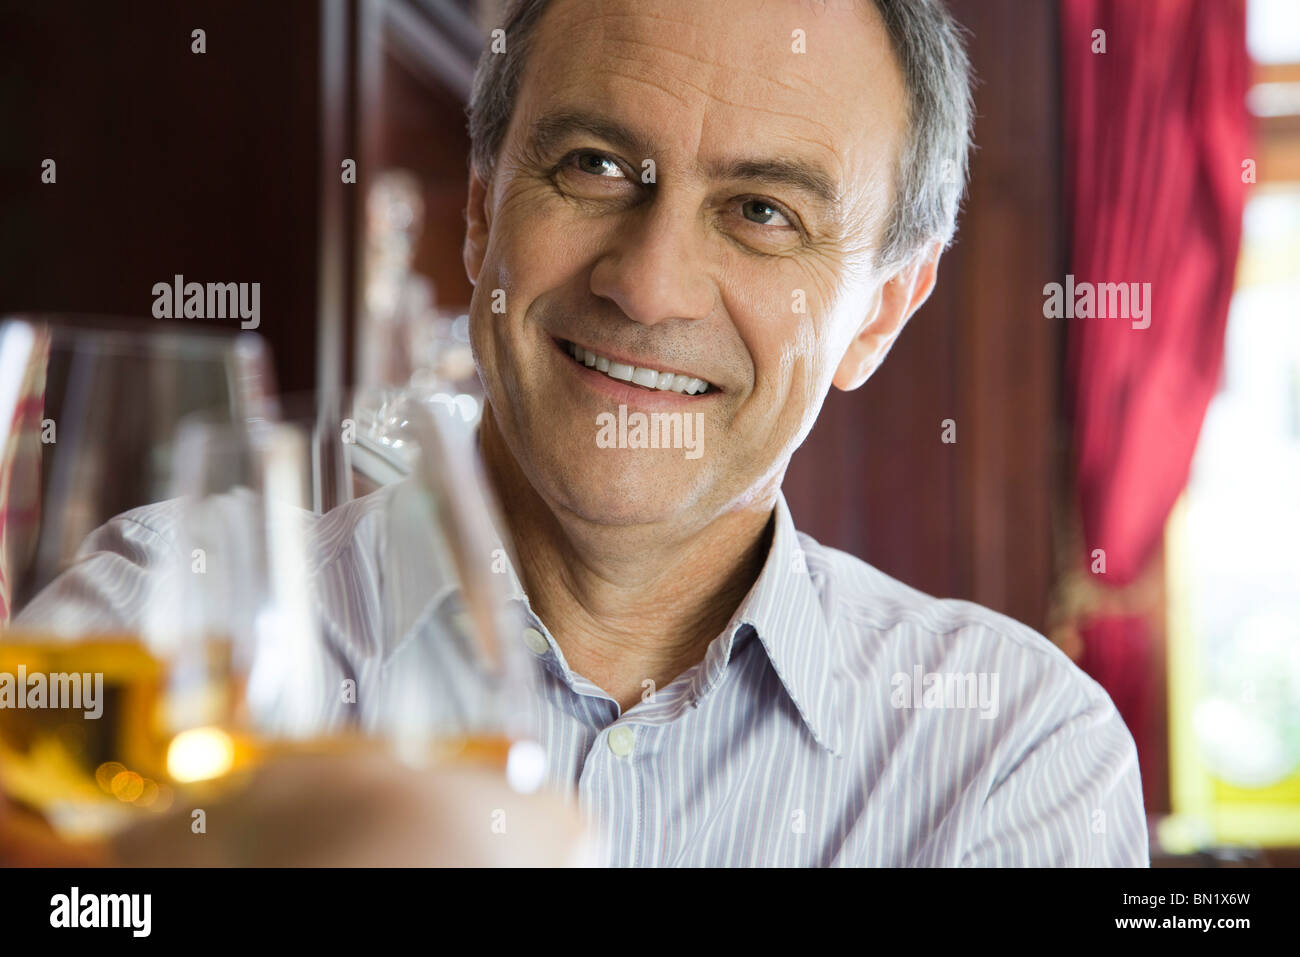 Mature man clinking glasses with companion in restaurant - Stock Image